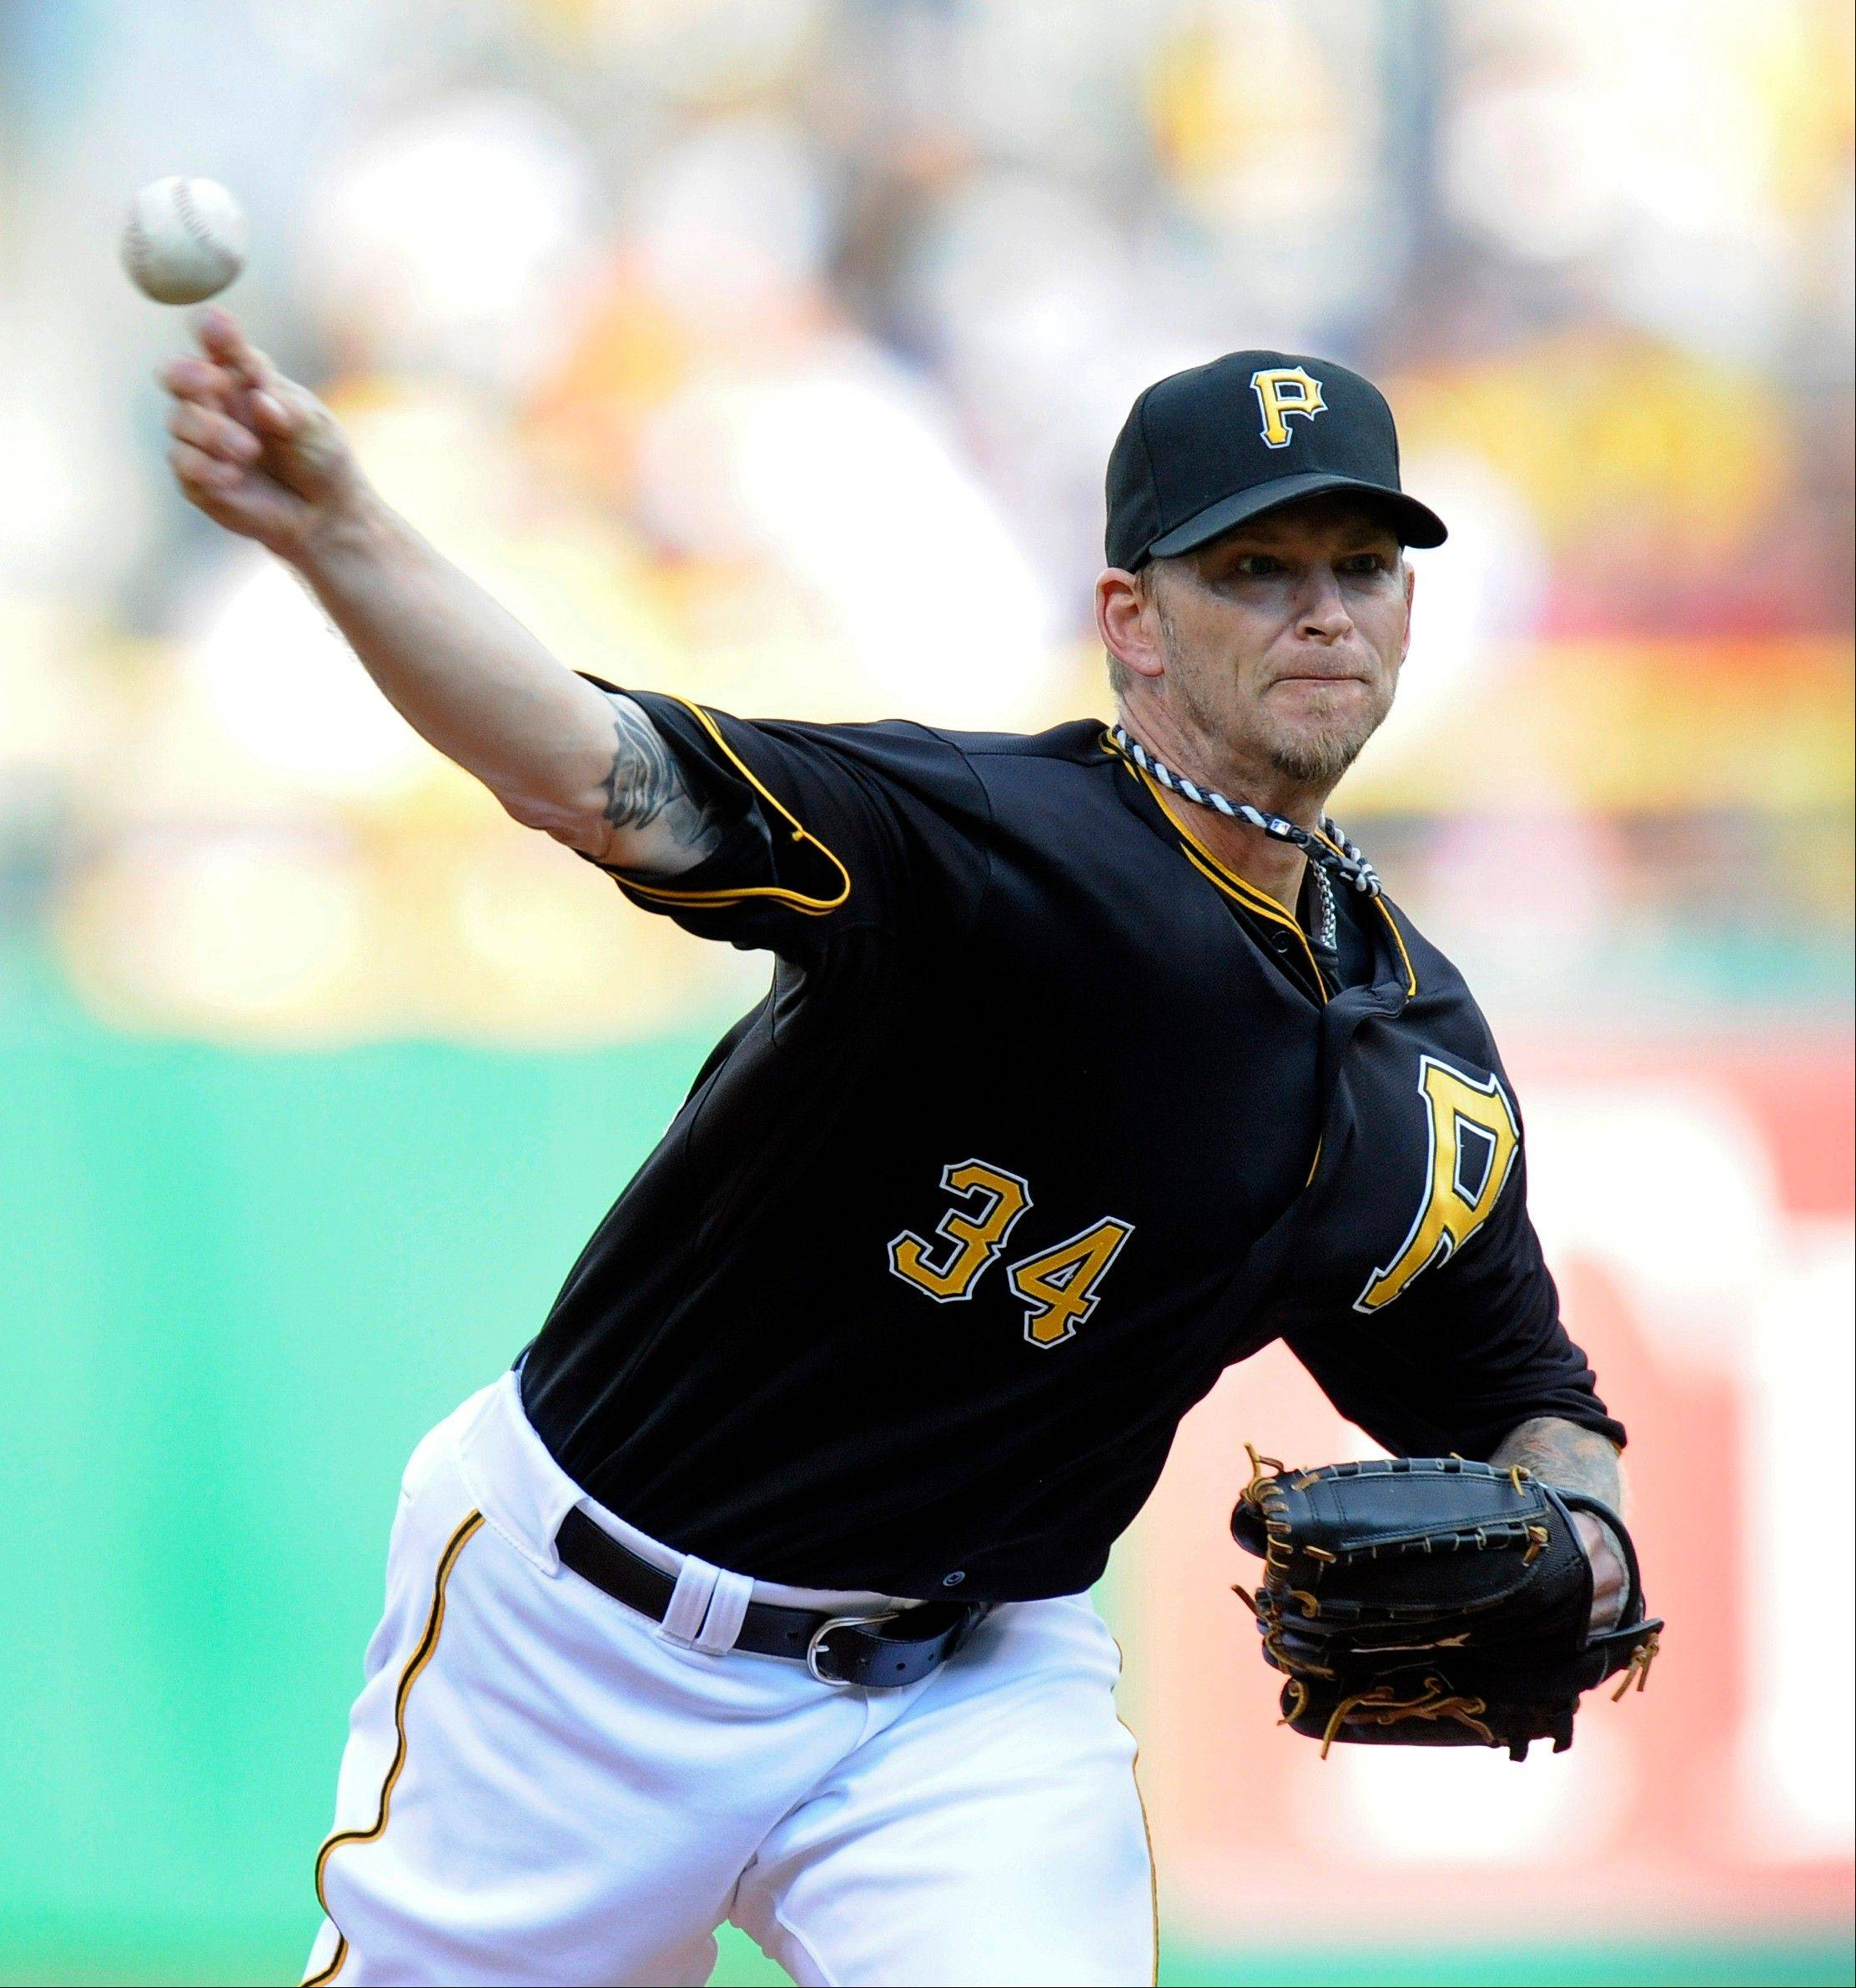 Pittsburgh Pirates starter A.J. Burnett delivers a pitch Friday against the Detroit Tigers in Pittsburgh.